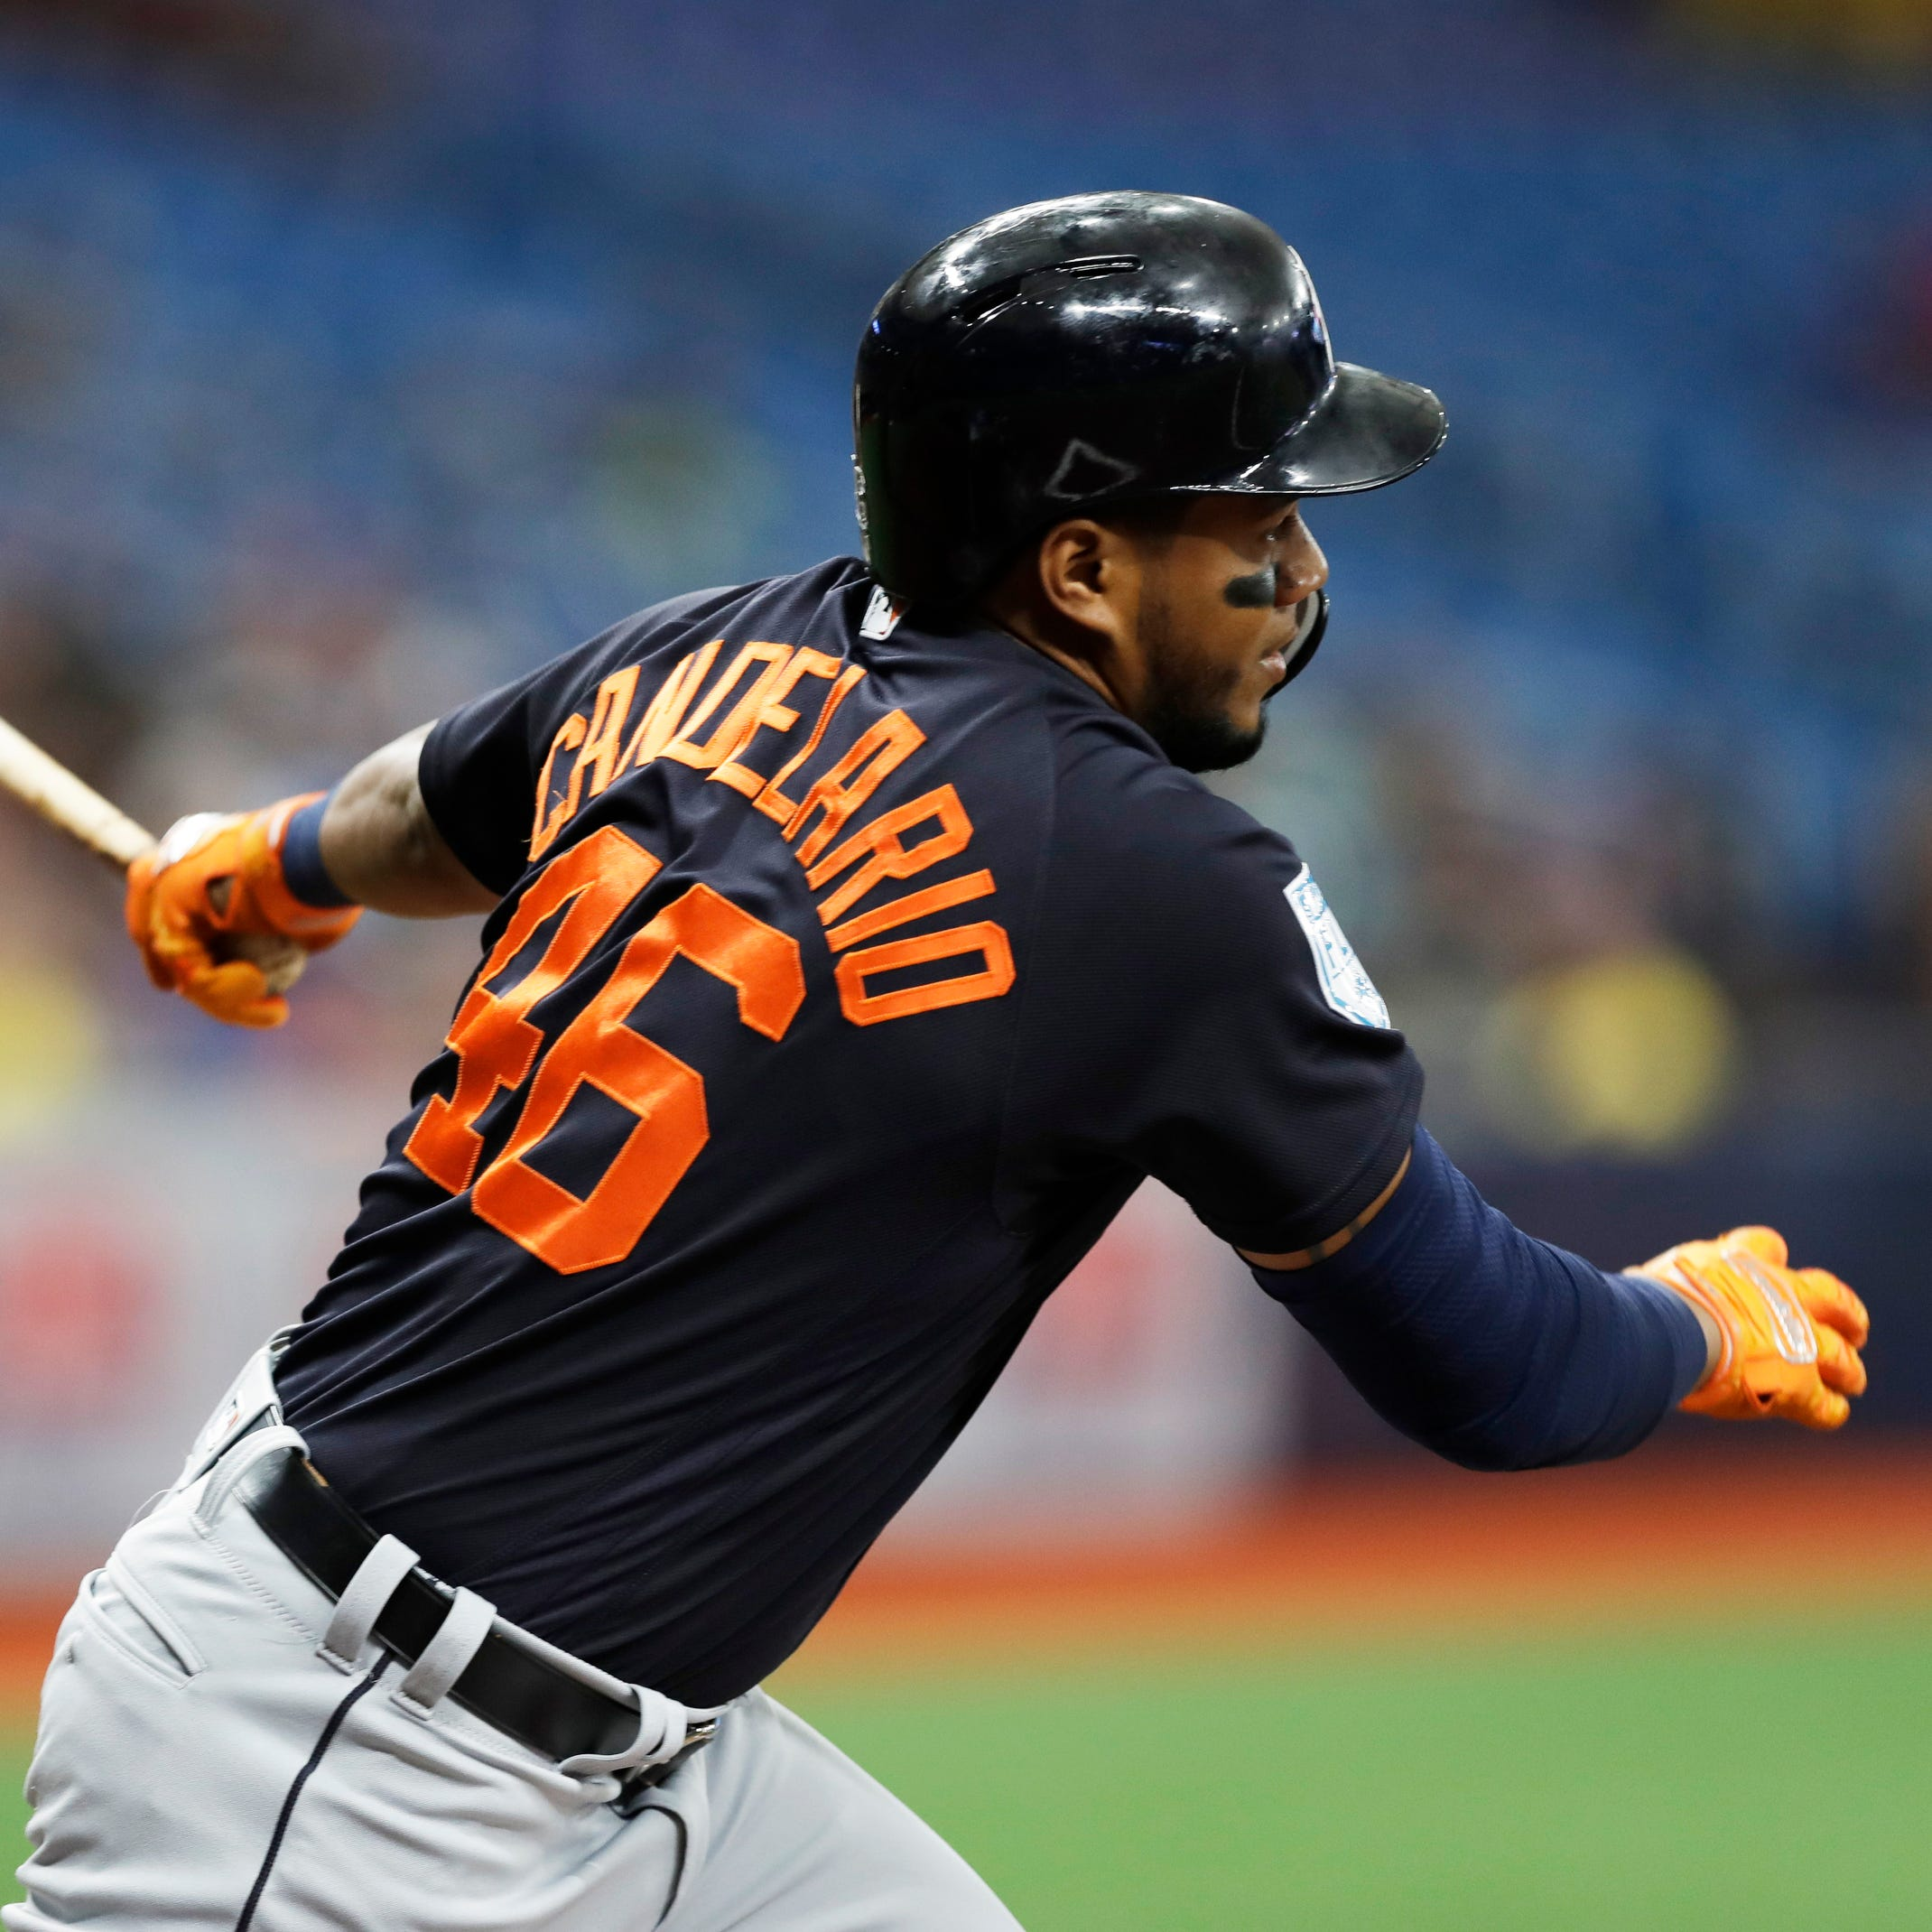 Tigers lineup construction: Candelario earned right to hit clean-up, Gardenhire says